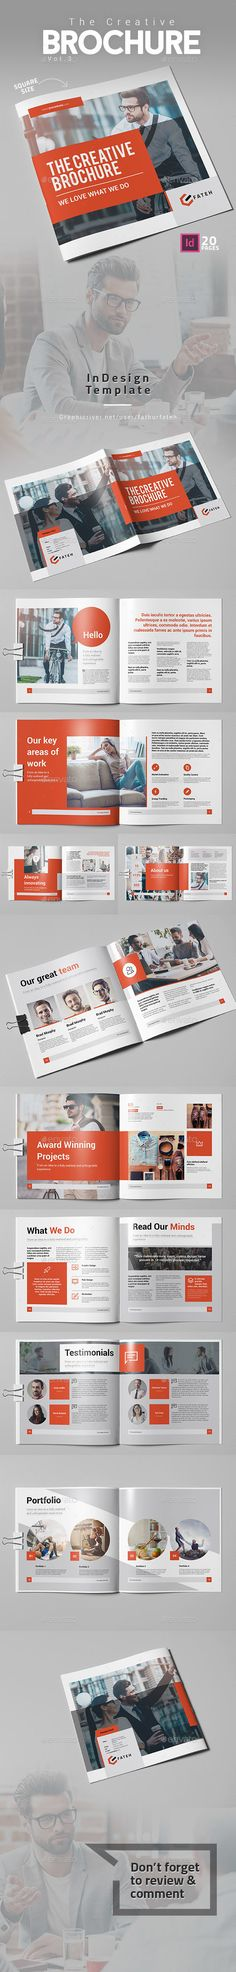 The Creative Brochure Vol.3 Square — InDesign INDD #clean #marketing • Download ➝ https://graphicriver.net/item/the-creative-brochure-vol3-square/19599367?ref=pxcr